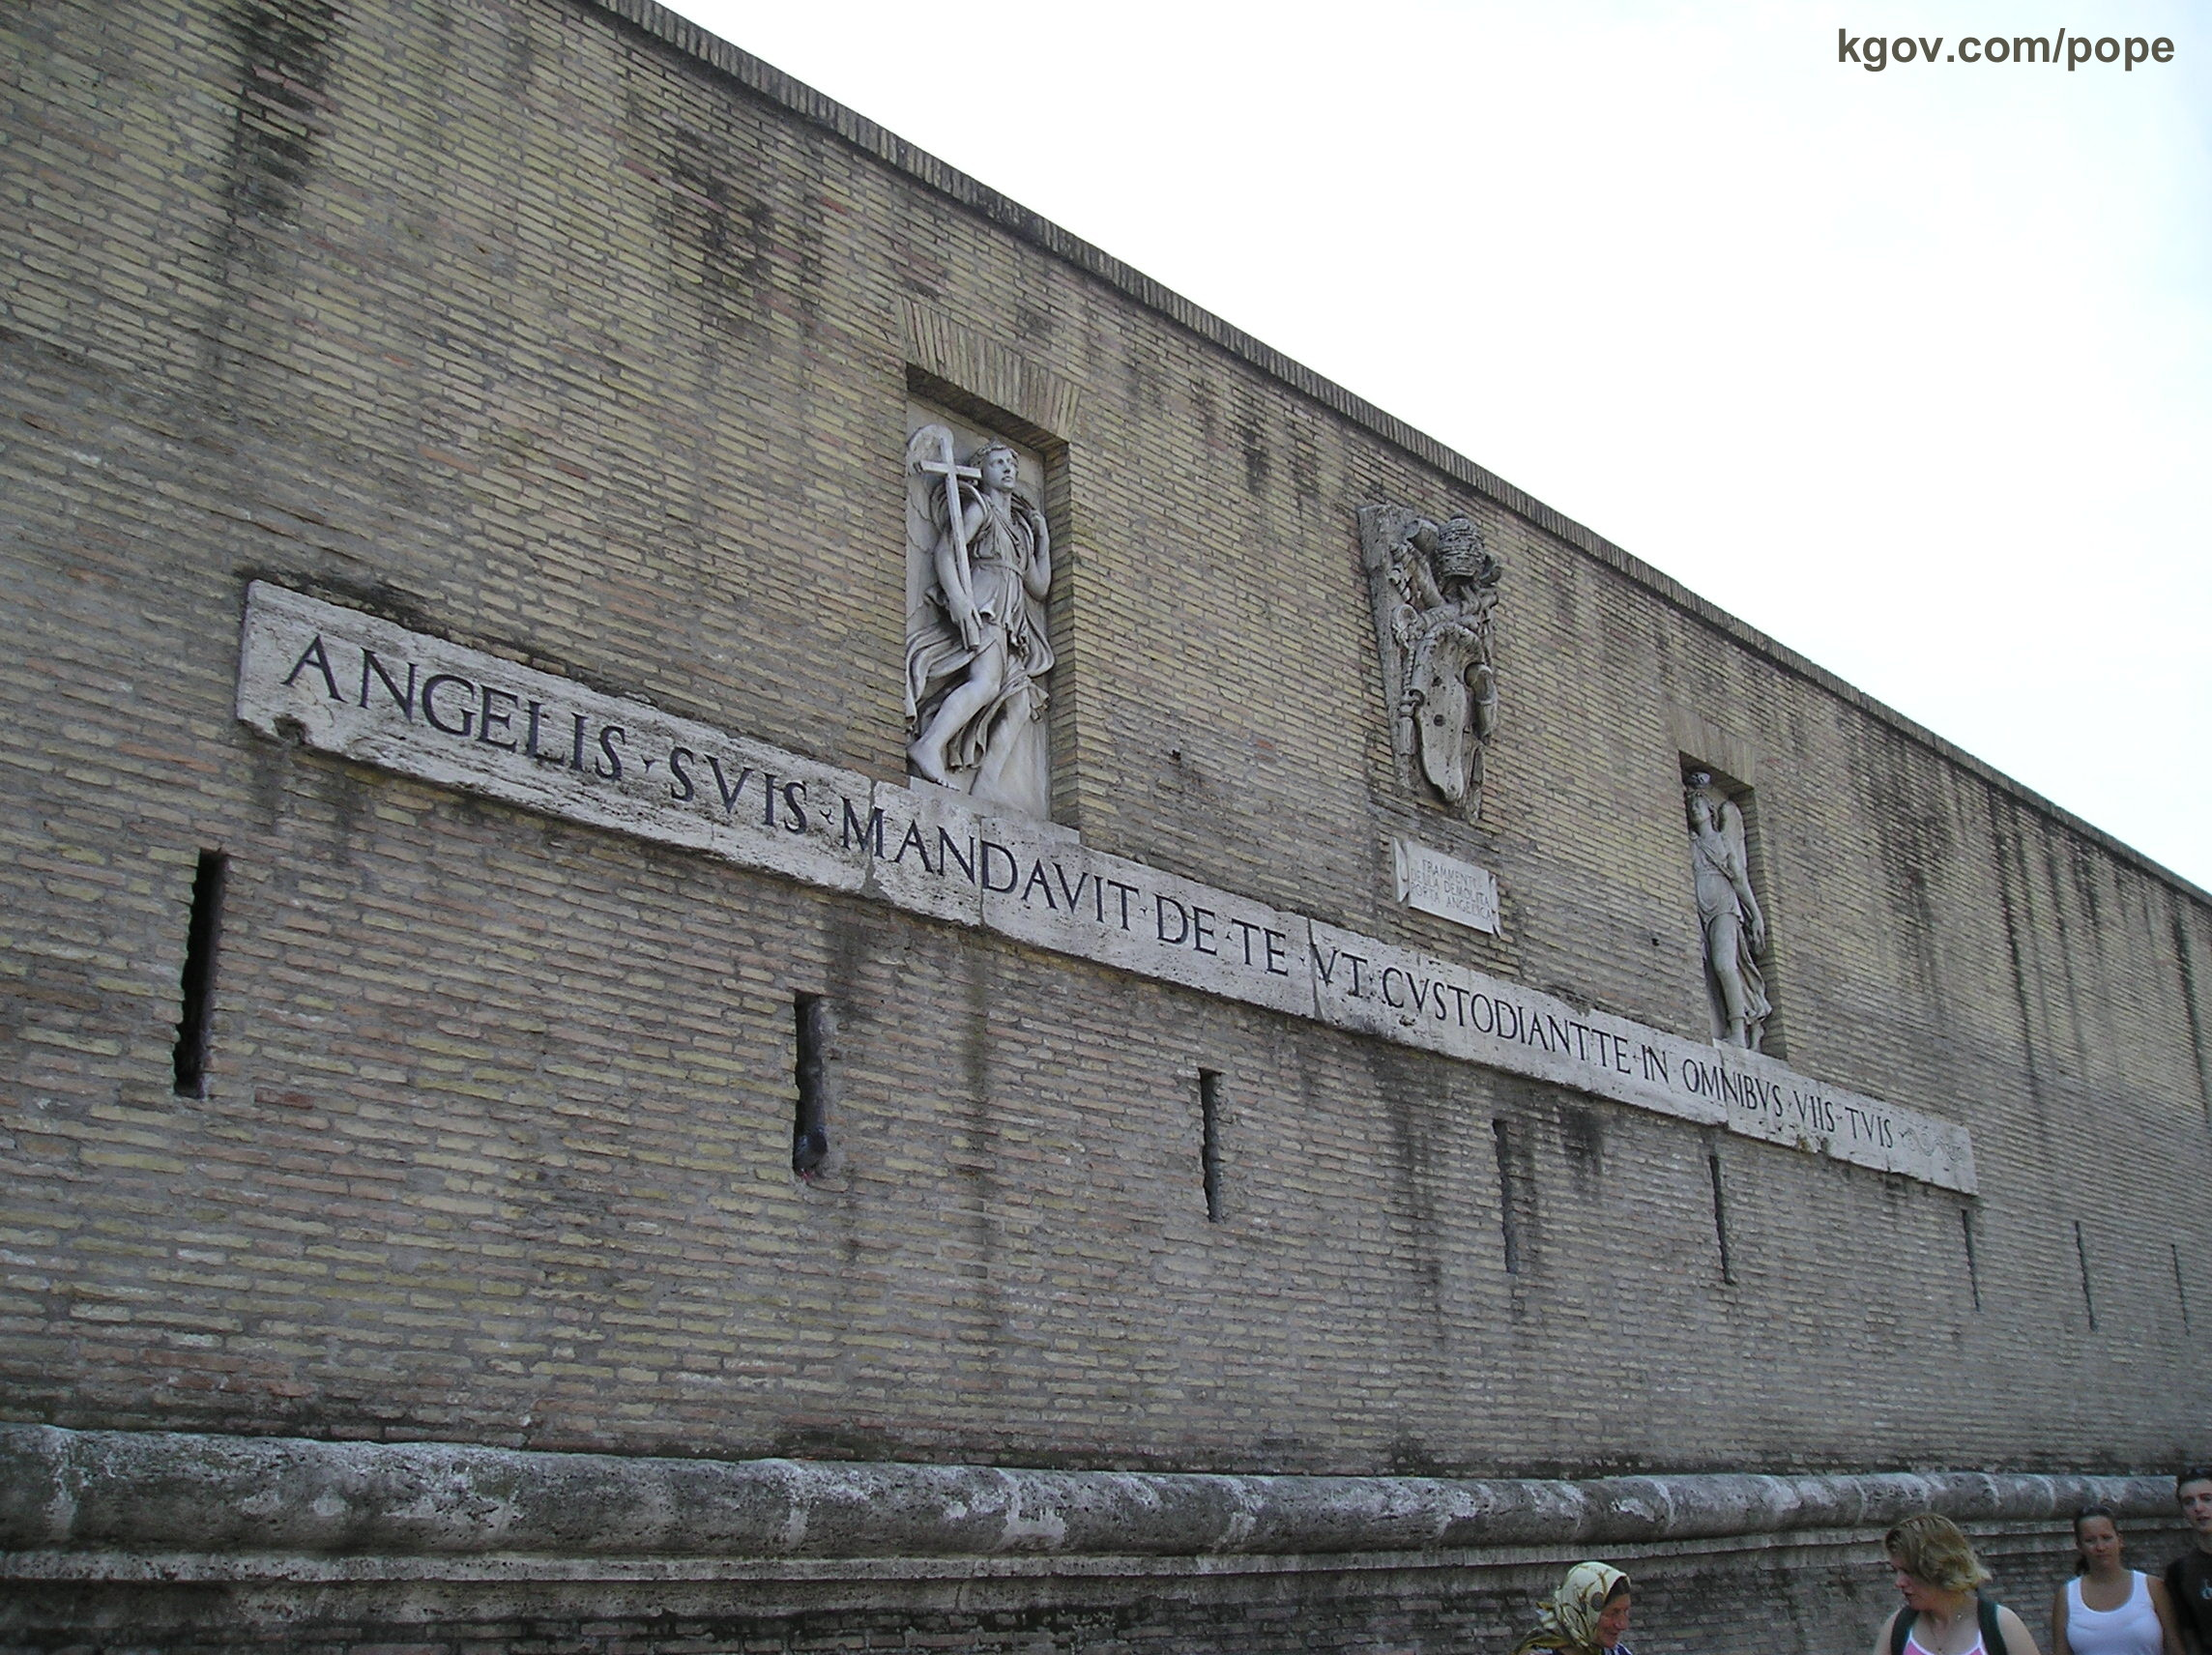 Vatican Wall keeps illegals out...